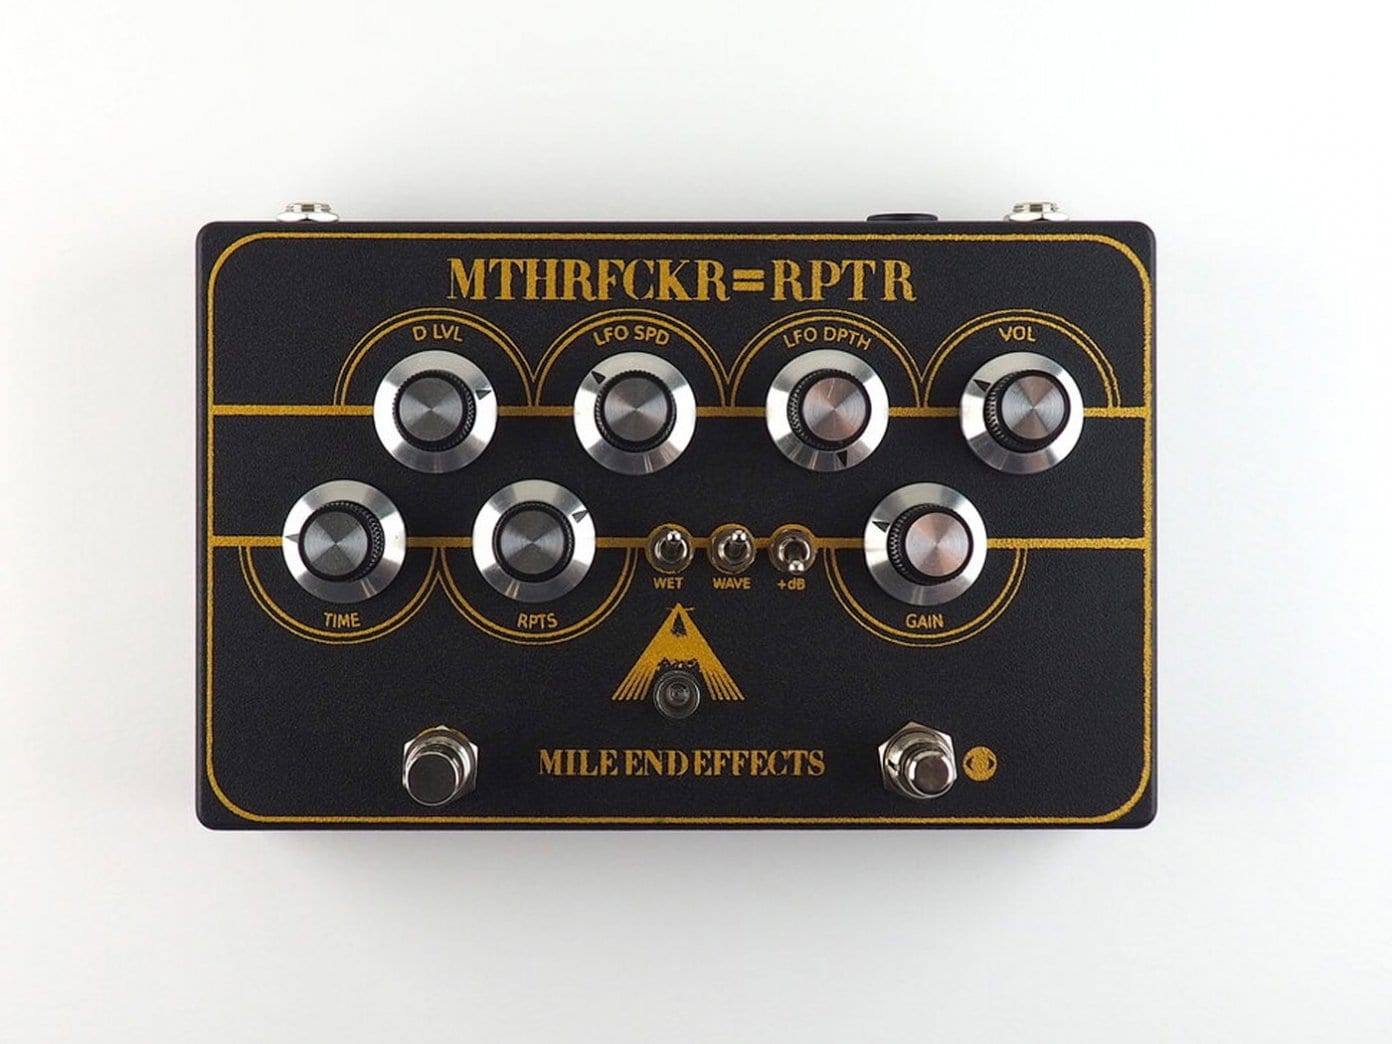 Mile End Effects' new mthrfckr=rptr pedal